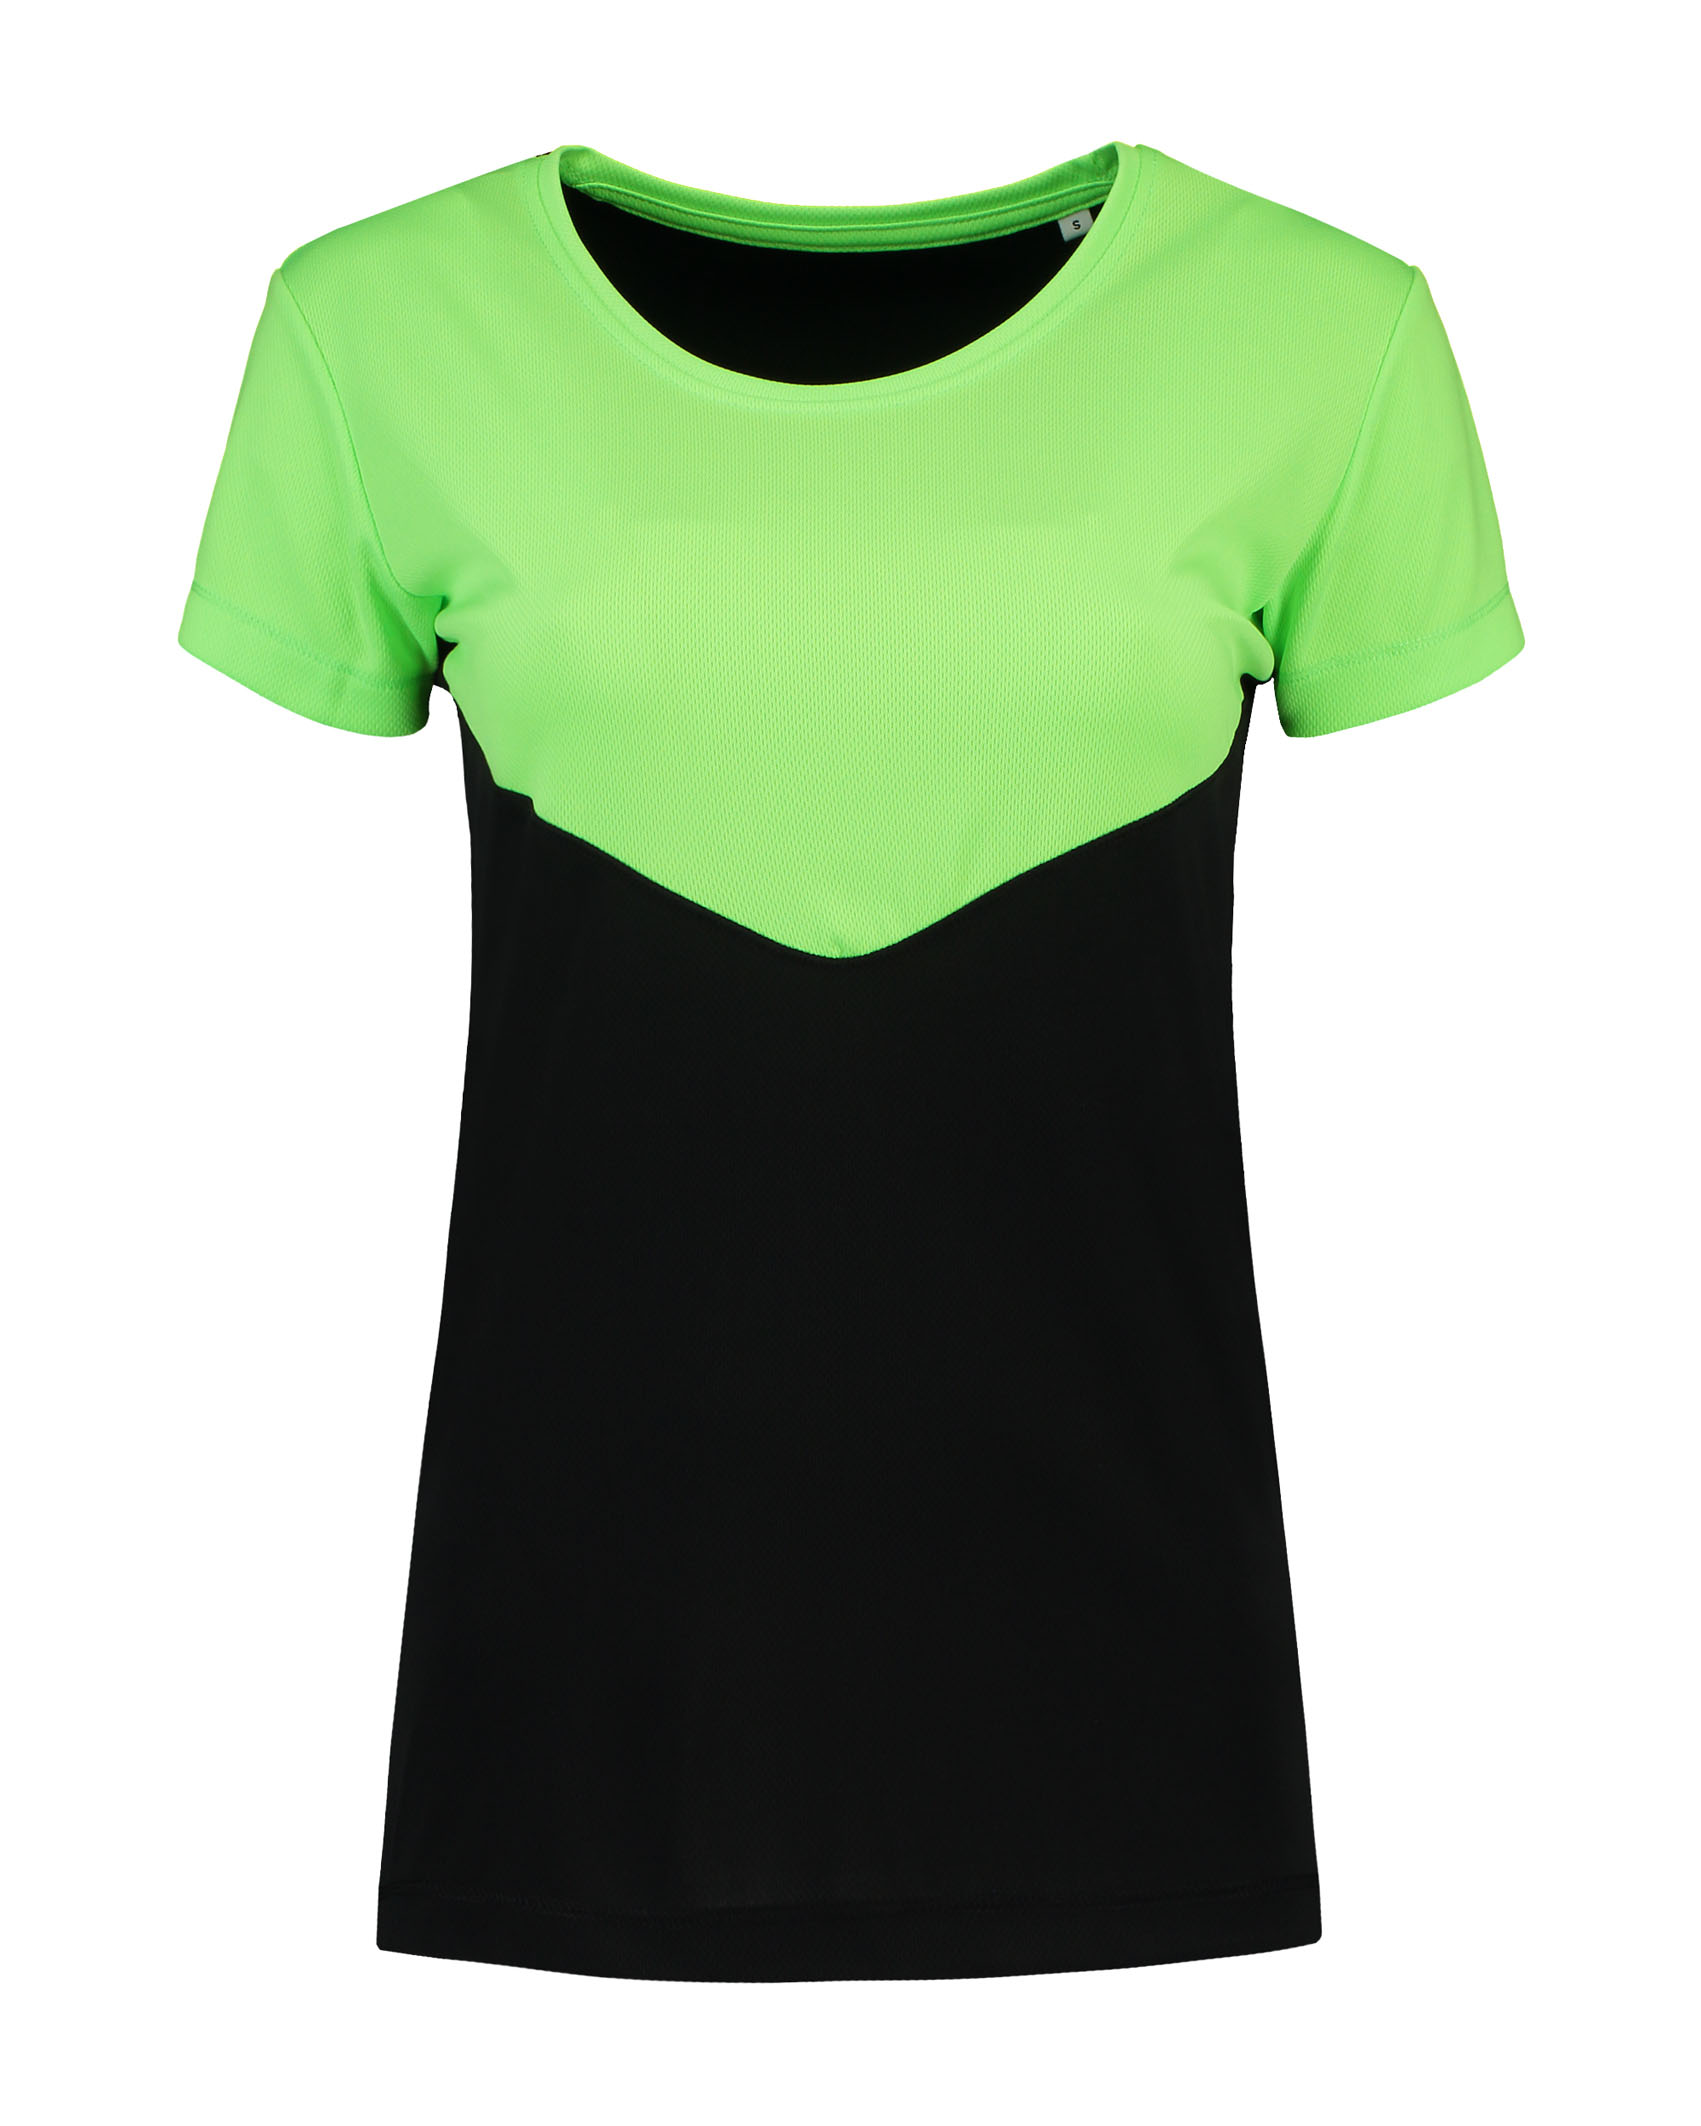 L&S Contrast Sports T-shirt for her